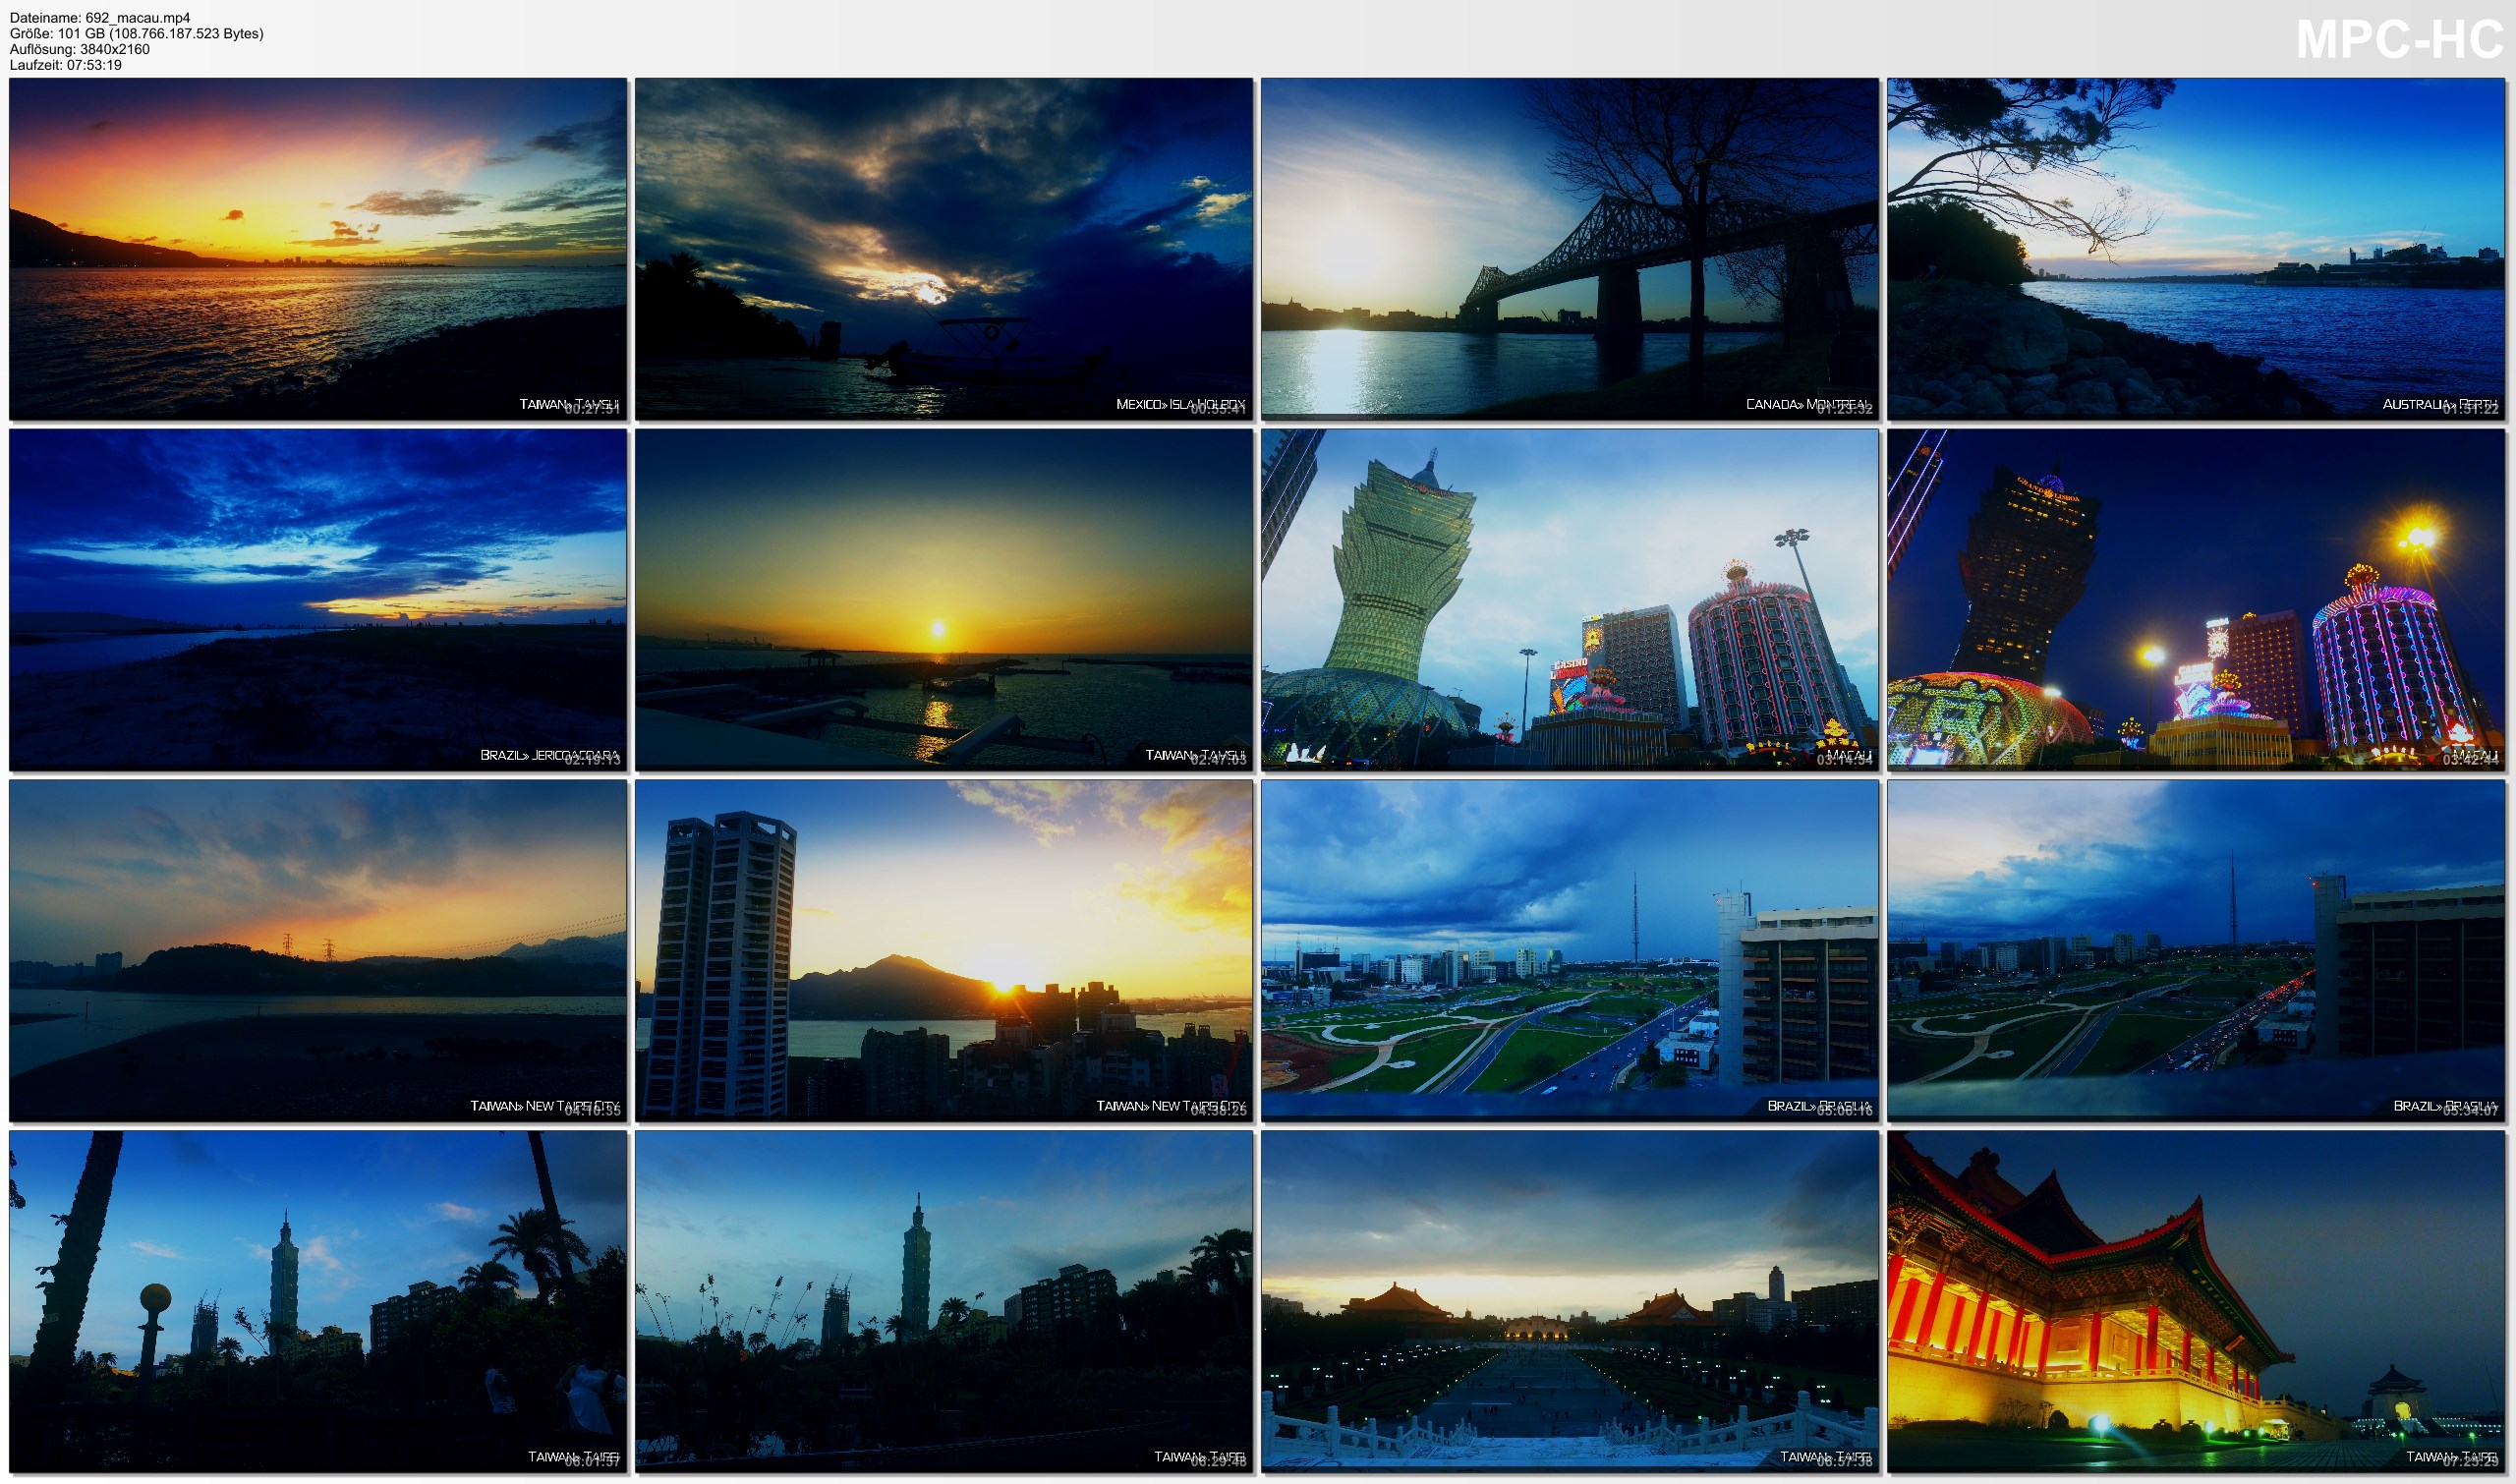 Pictures from Video 【4K】8 HOUR RELAX FILM: «Sunsets of the World» Ultra HD + Relaxation Music (for 2160p Ambient TV)